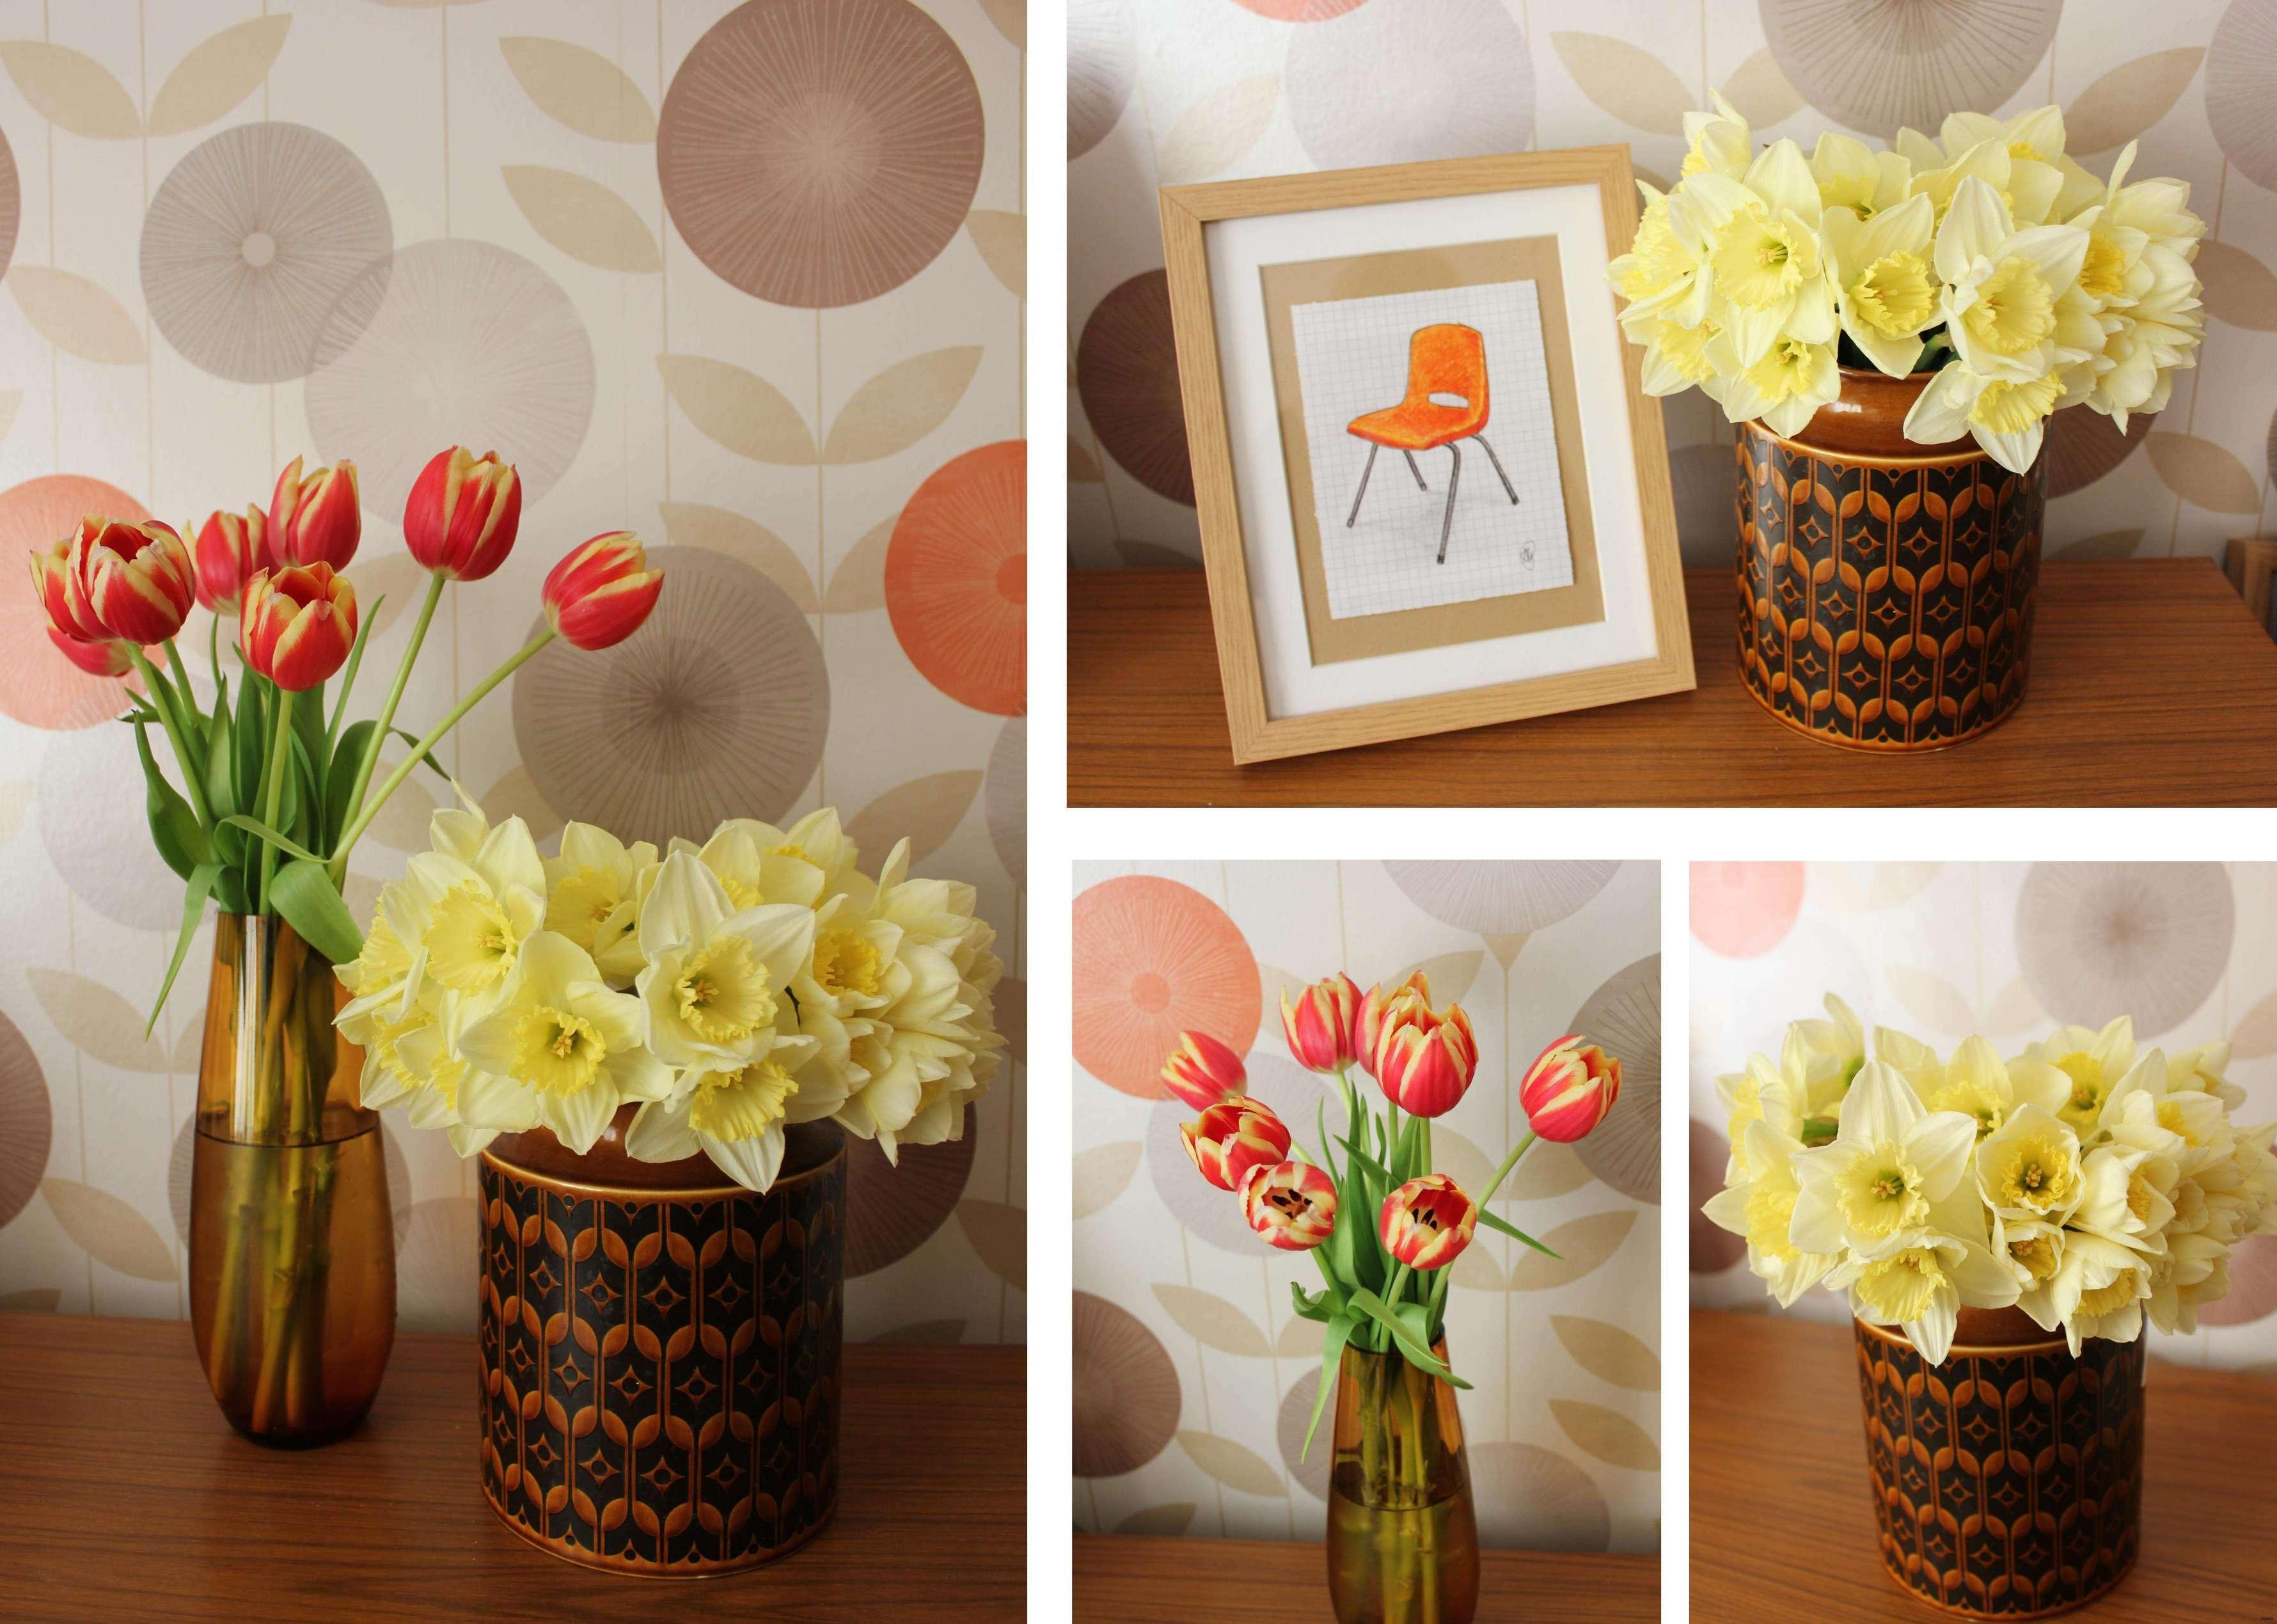 tall vase arrangements branches of diy flower wall decor unique here are the templates that are used to intended for diy flower wall decor unique diy home decor vaseh vases decorative flower ideas i 0d design